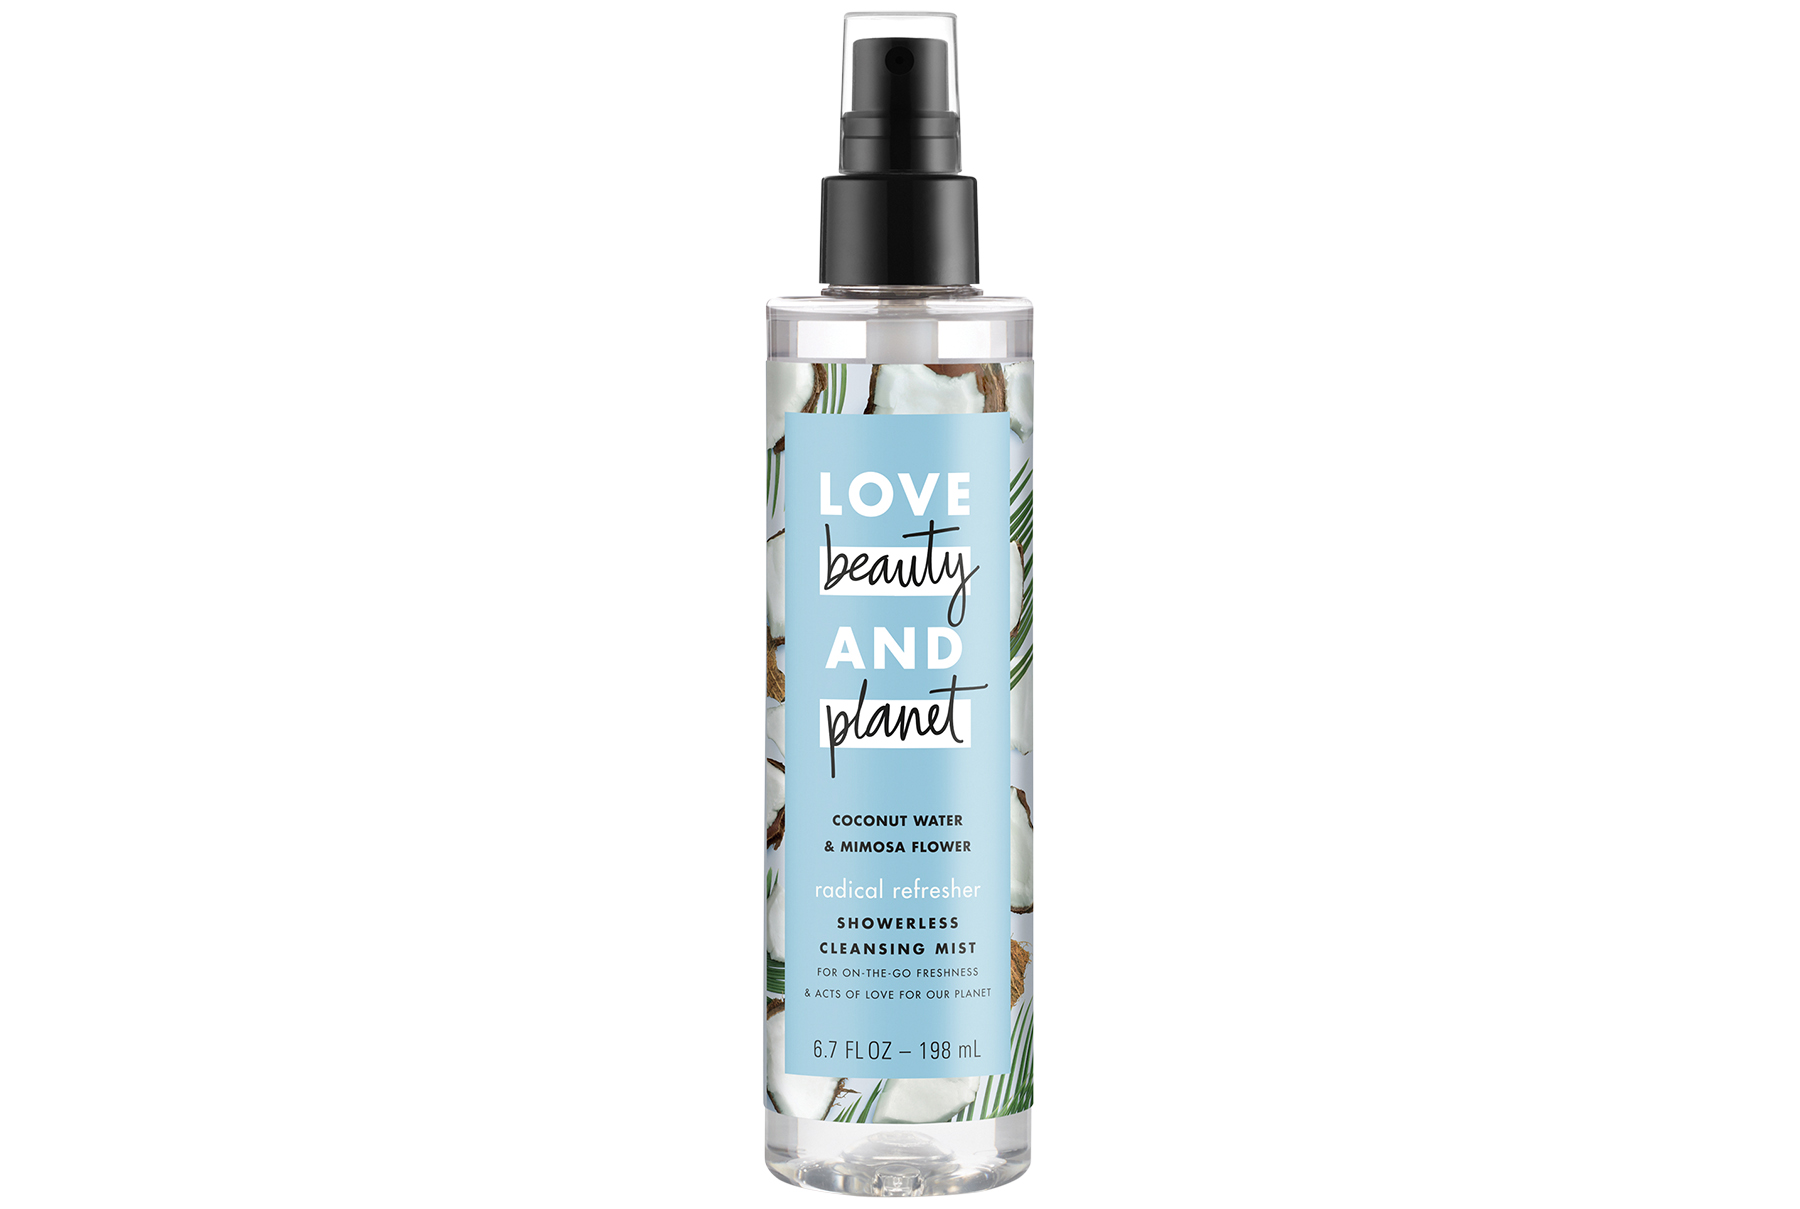 Love Beauty and Planet Showerless Cleansing Mist